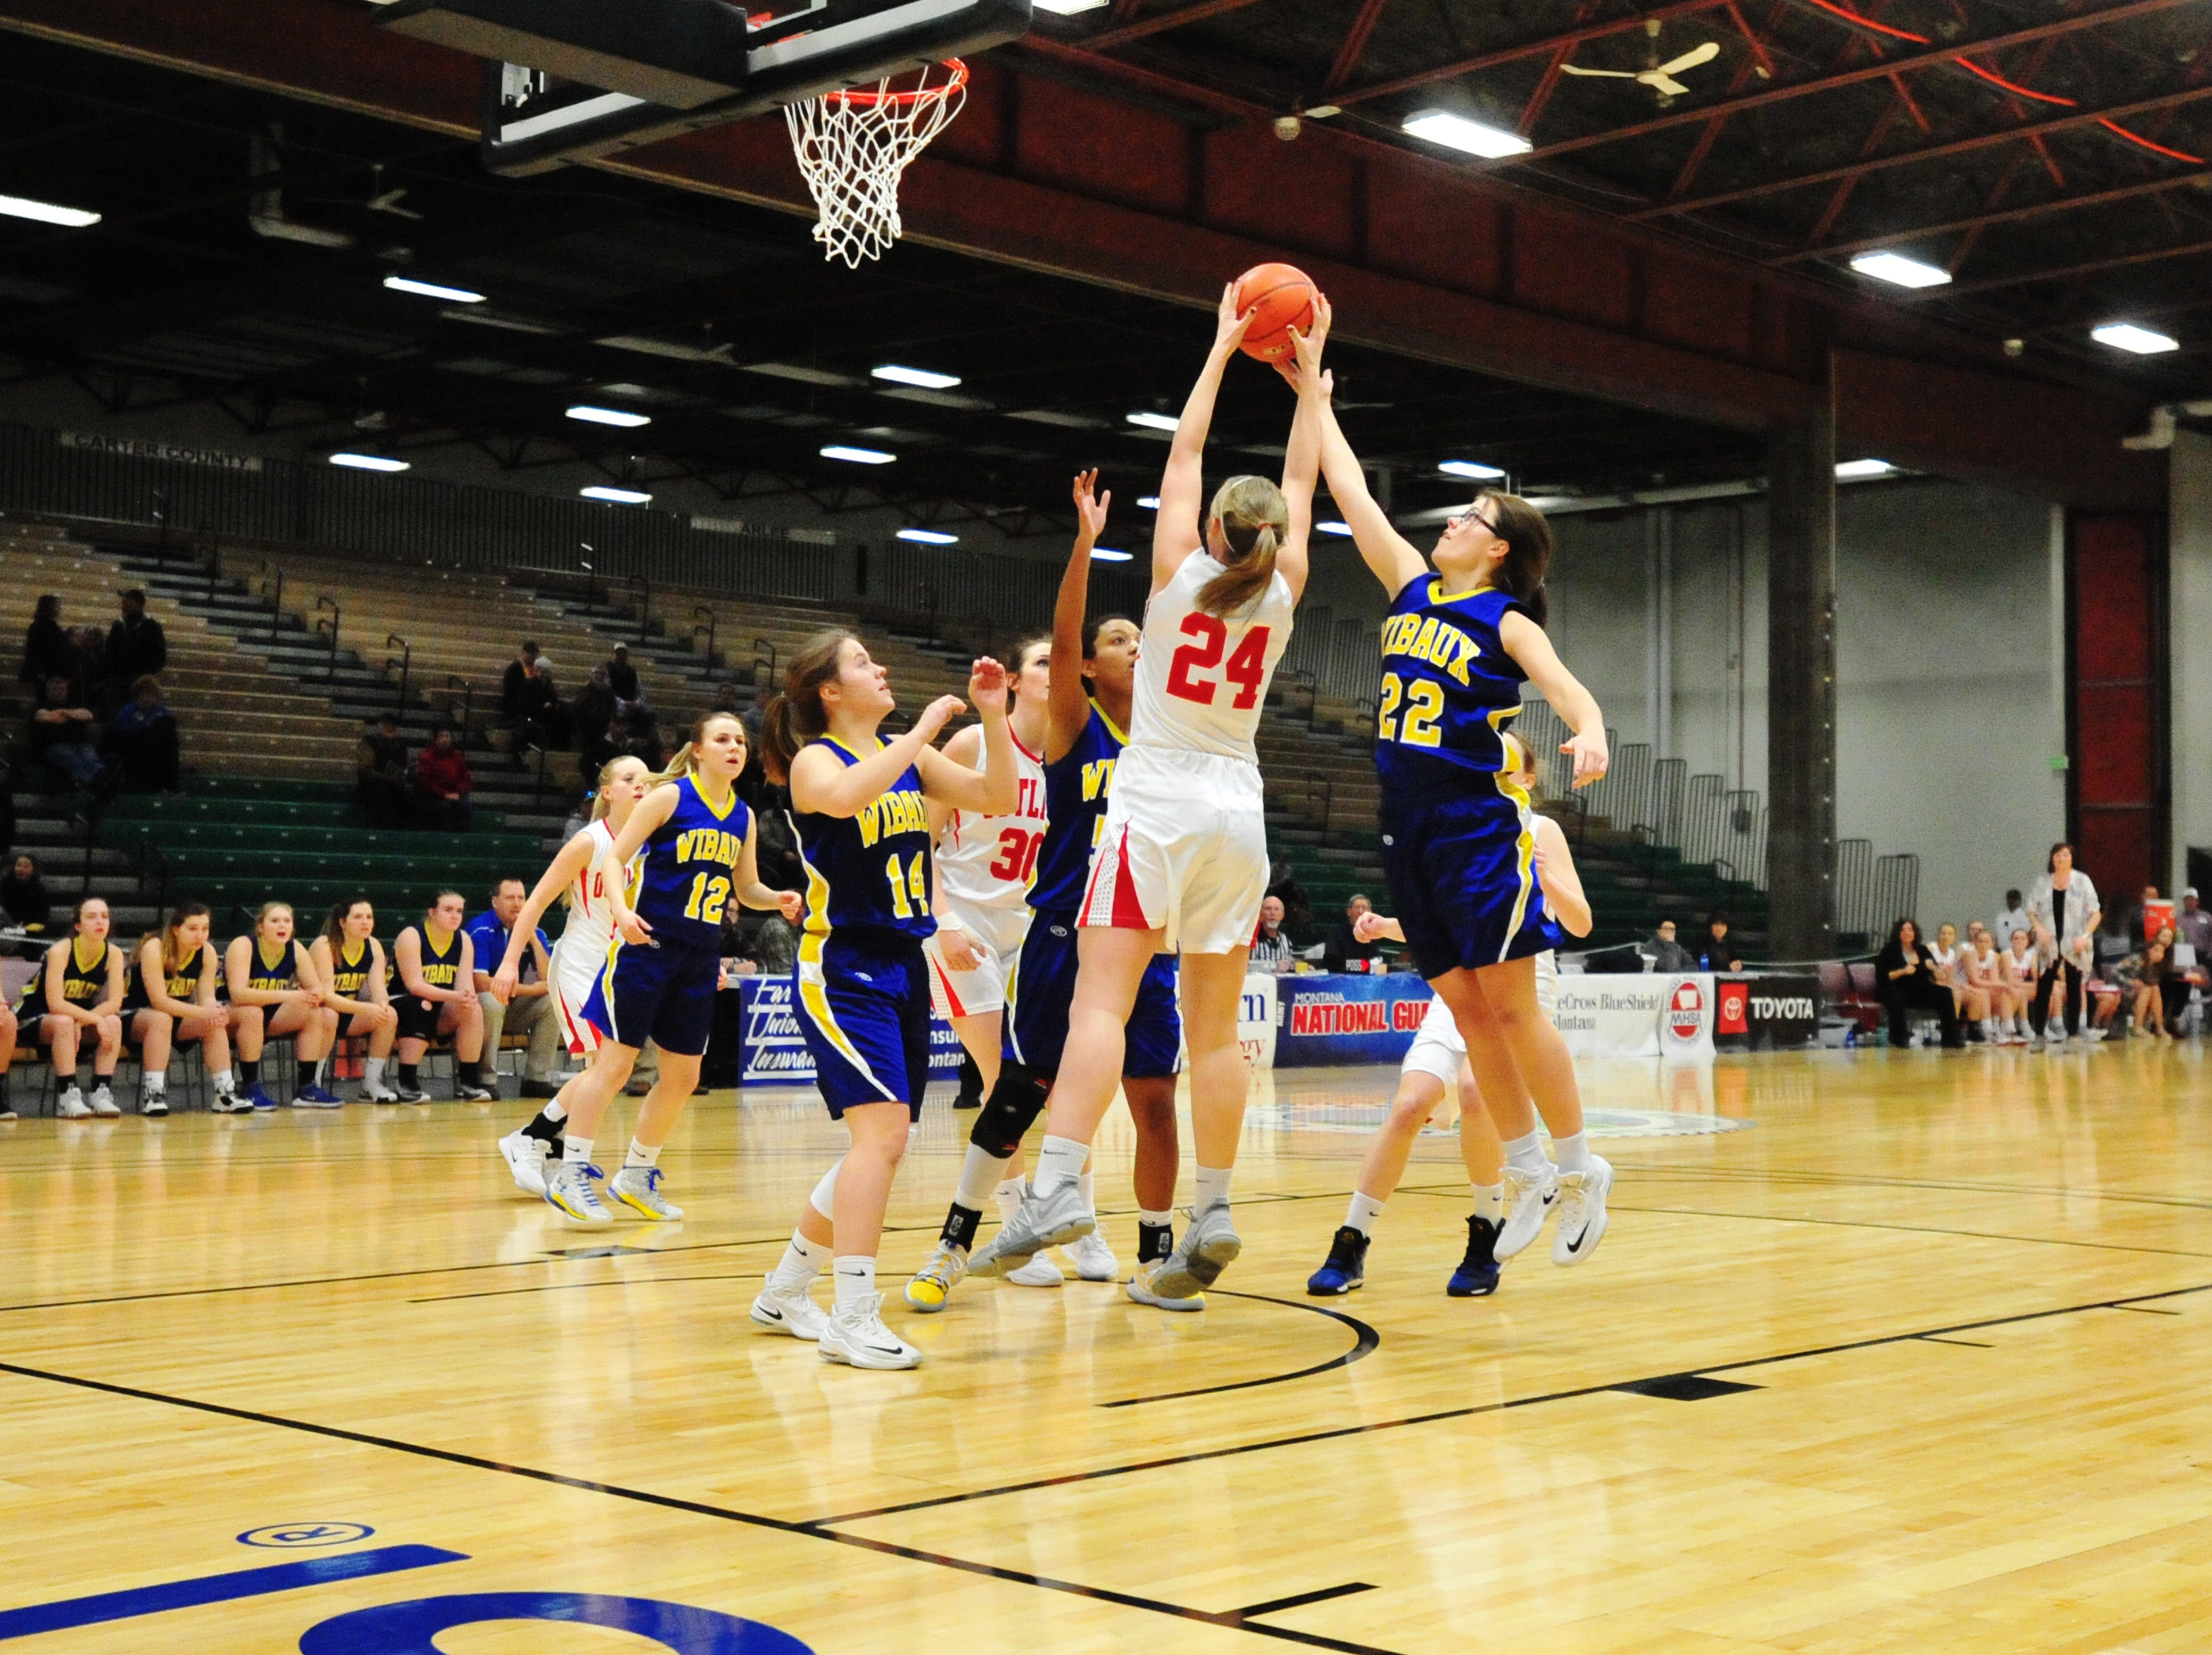 Roy-Winifred and Wibaux play in the first round of the Girls State C Basketball Tournament on Thursday in the Four Seasons Arena.